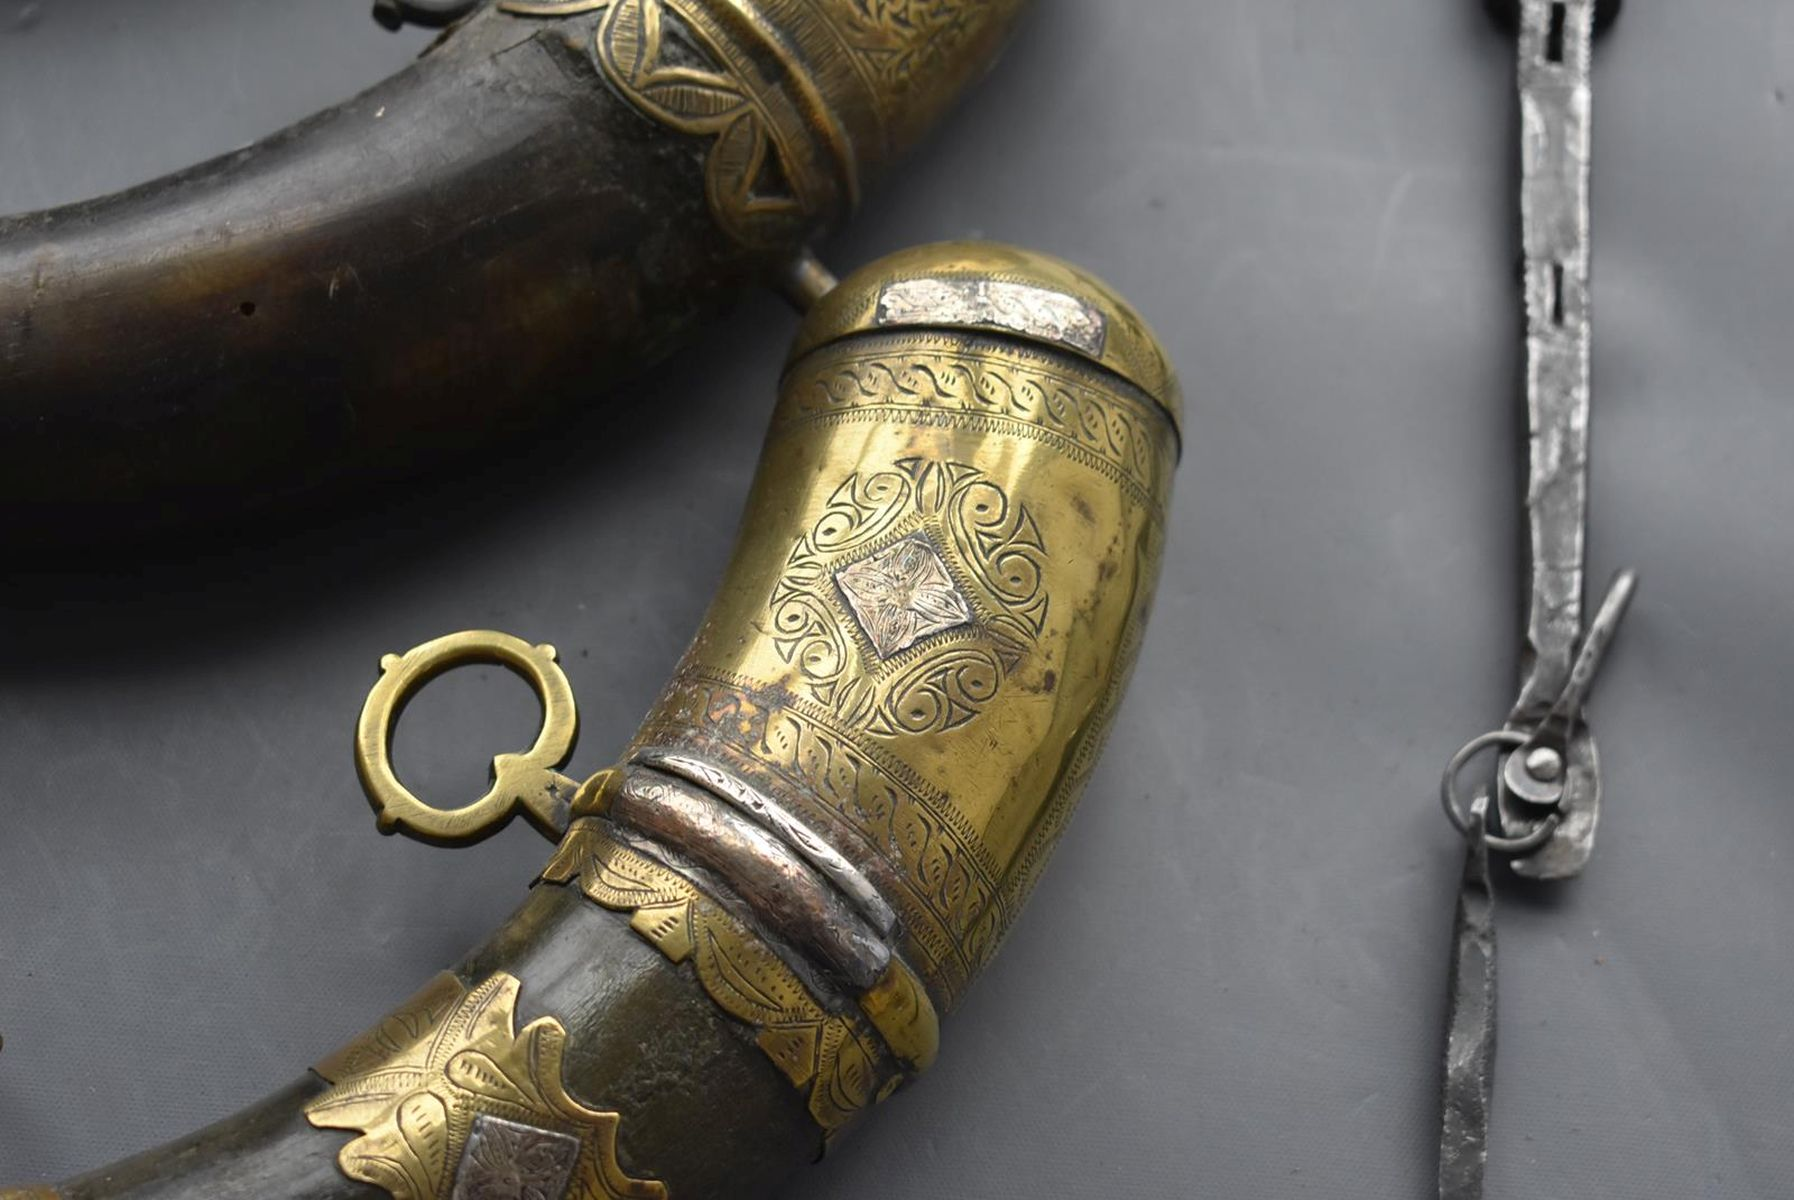 THREE VARIOUS NORTH AFRICAN POWDER HORNS, each of natural curving form with ornate brass mounts, - Image 3 of 11